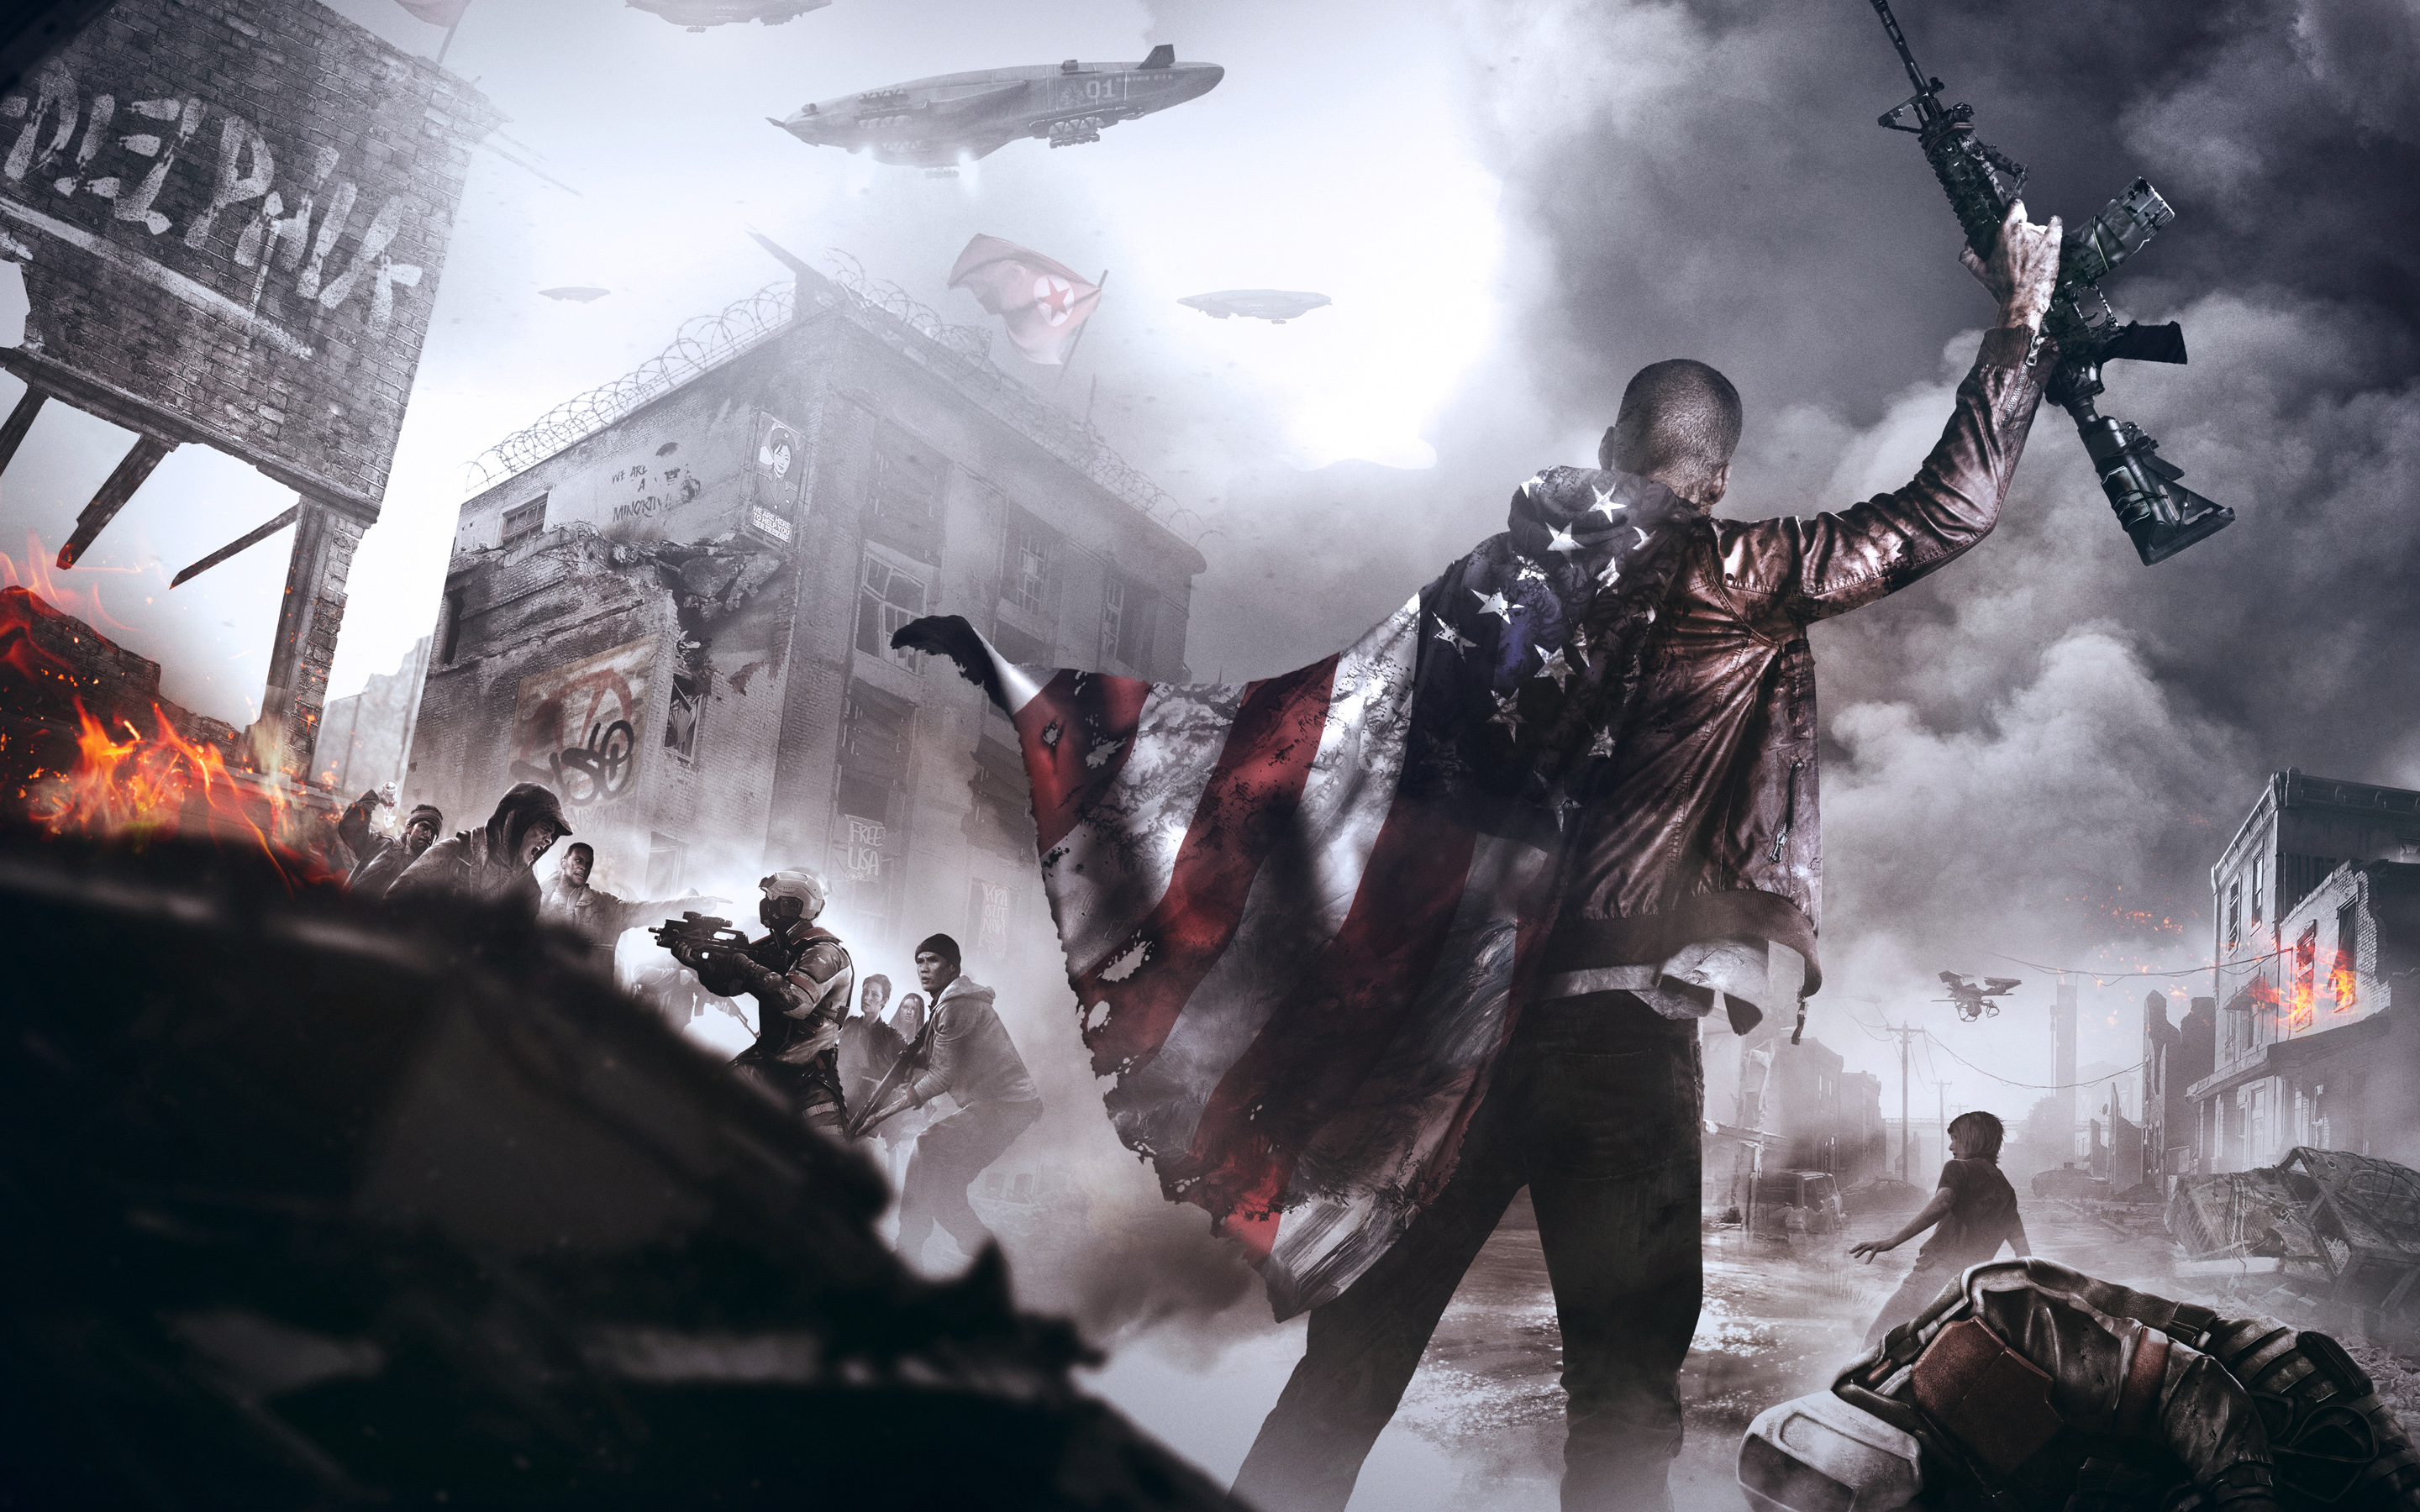 Homefront the revolution 2016 wallpapers wallpapers hd for Terengganu home wallpaper 2016